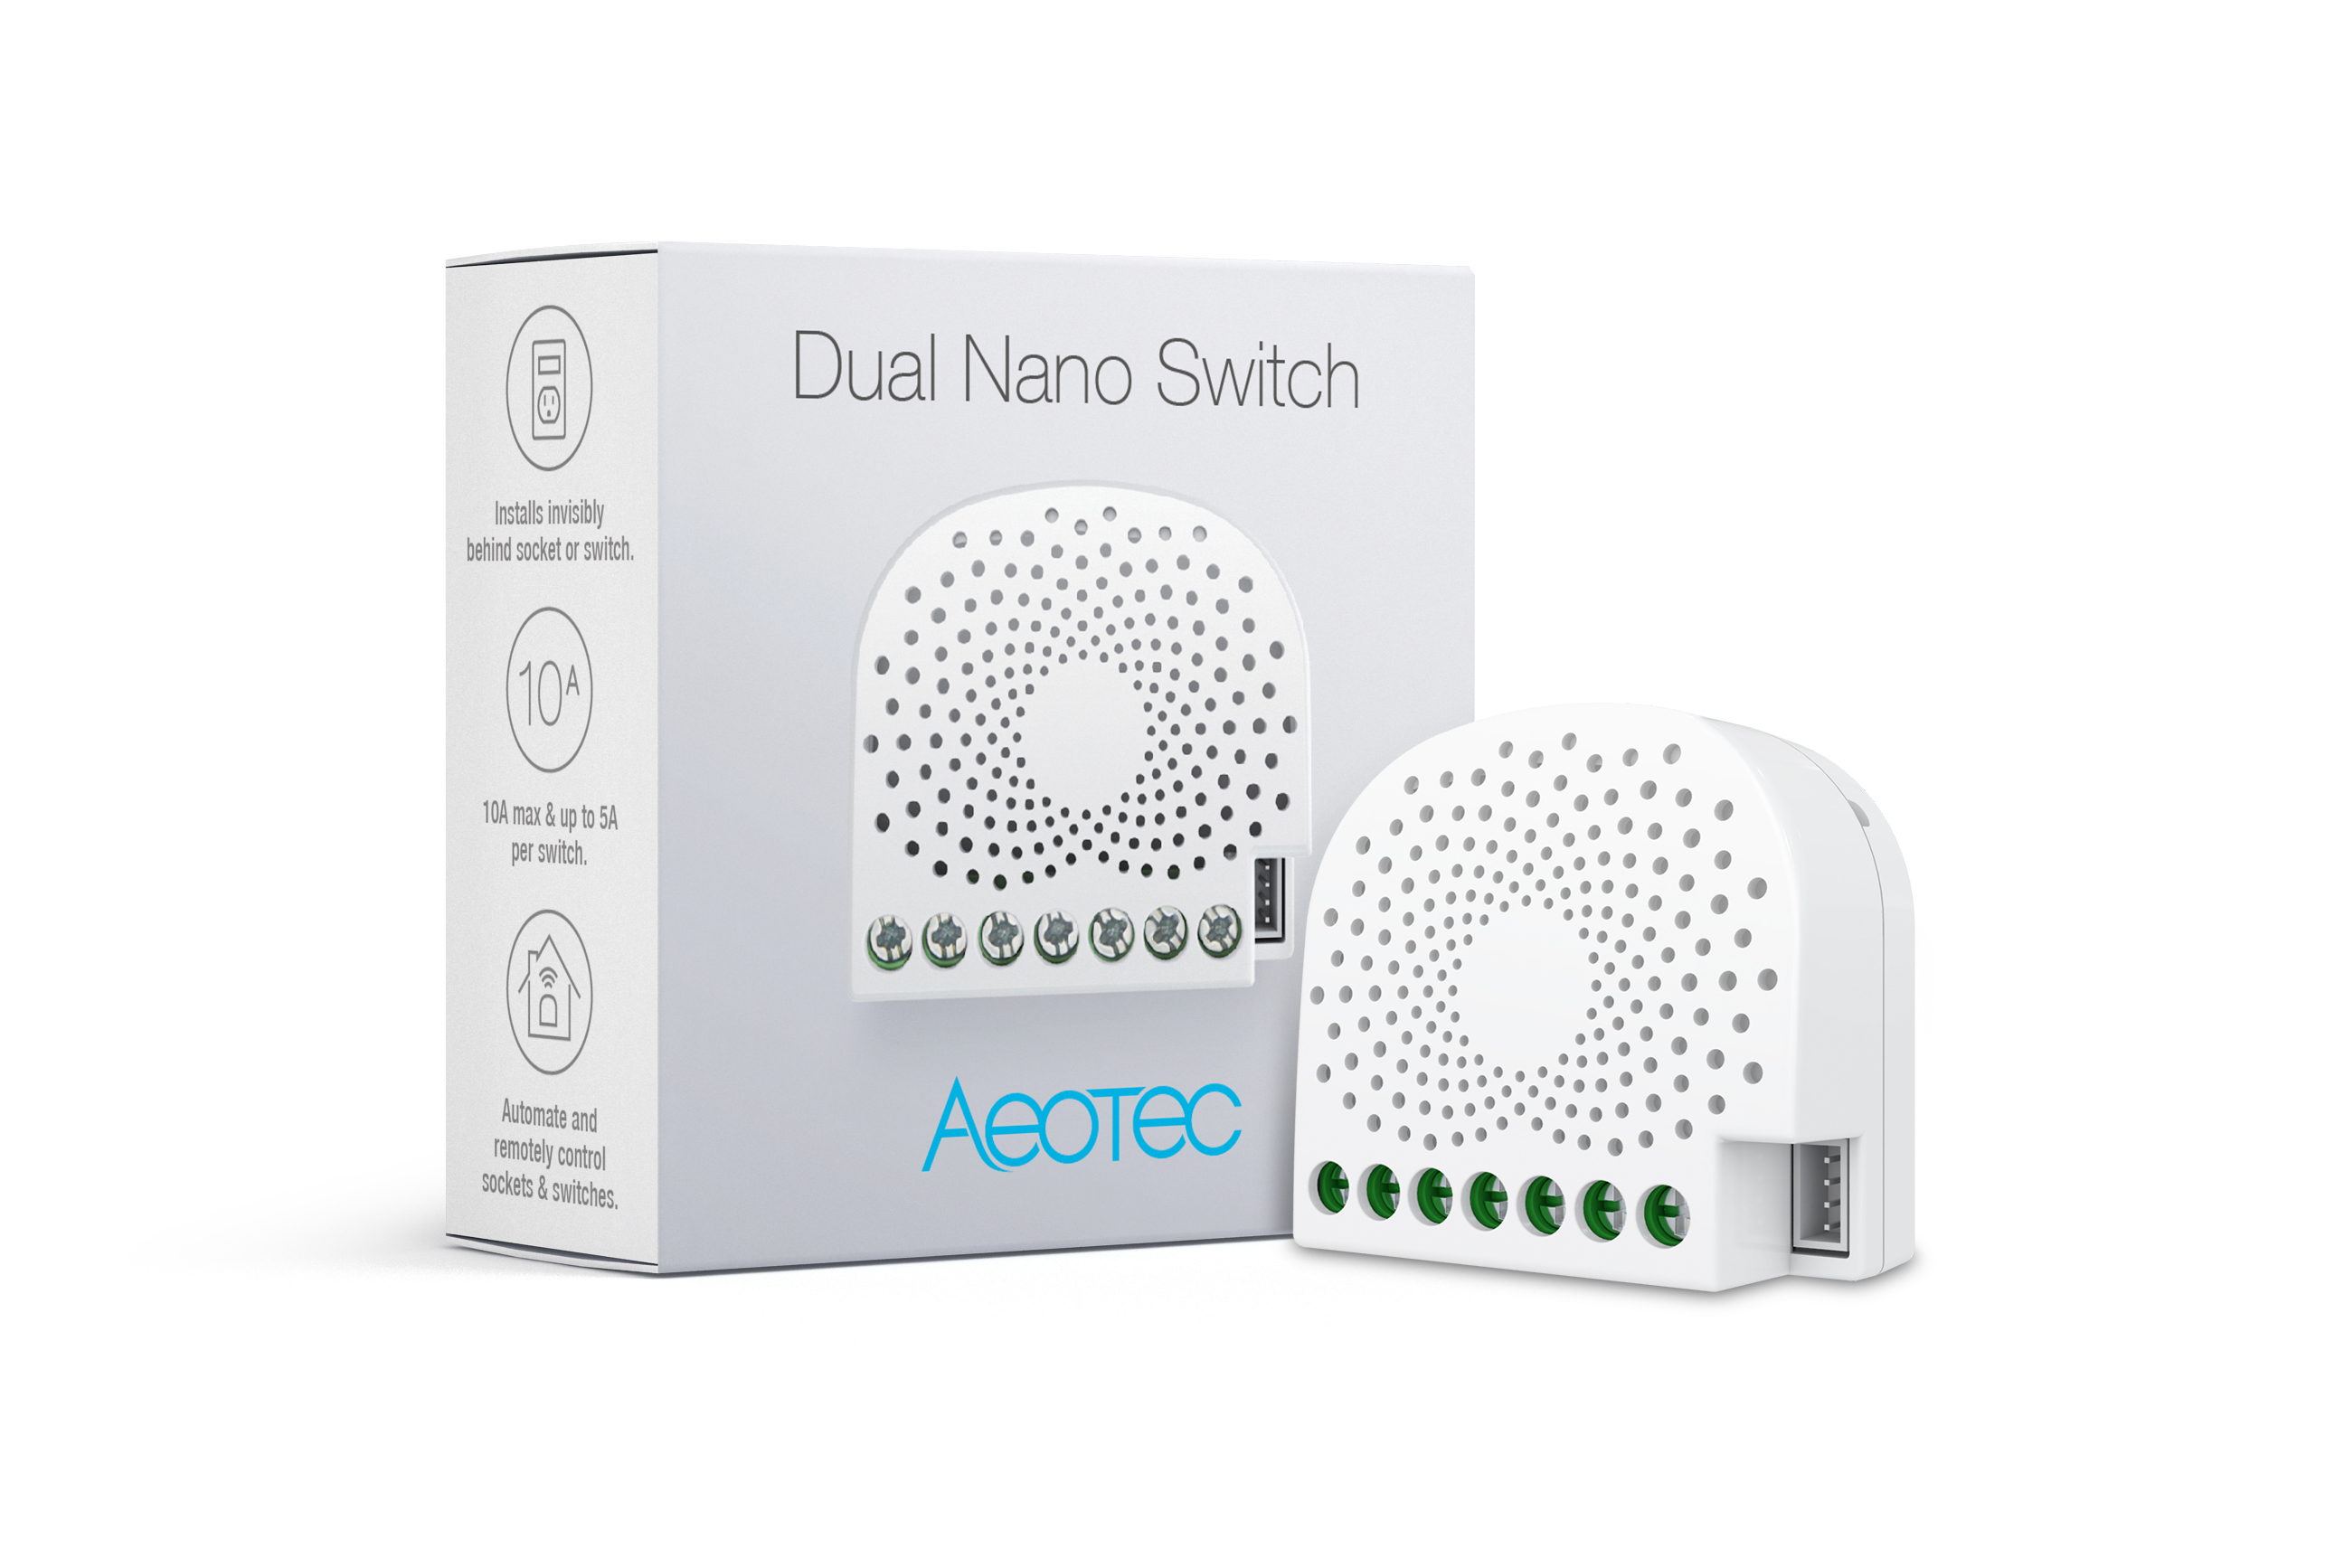 Aeotec Dual Nano Switch with power metering